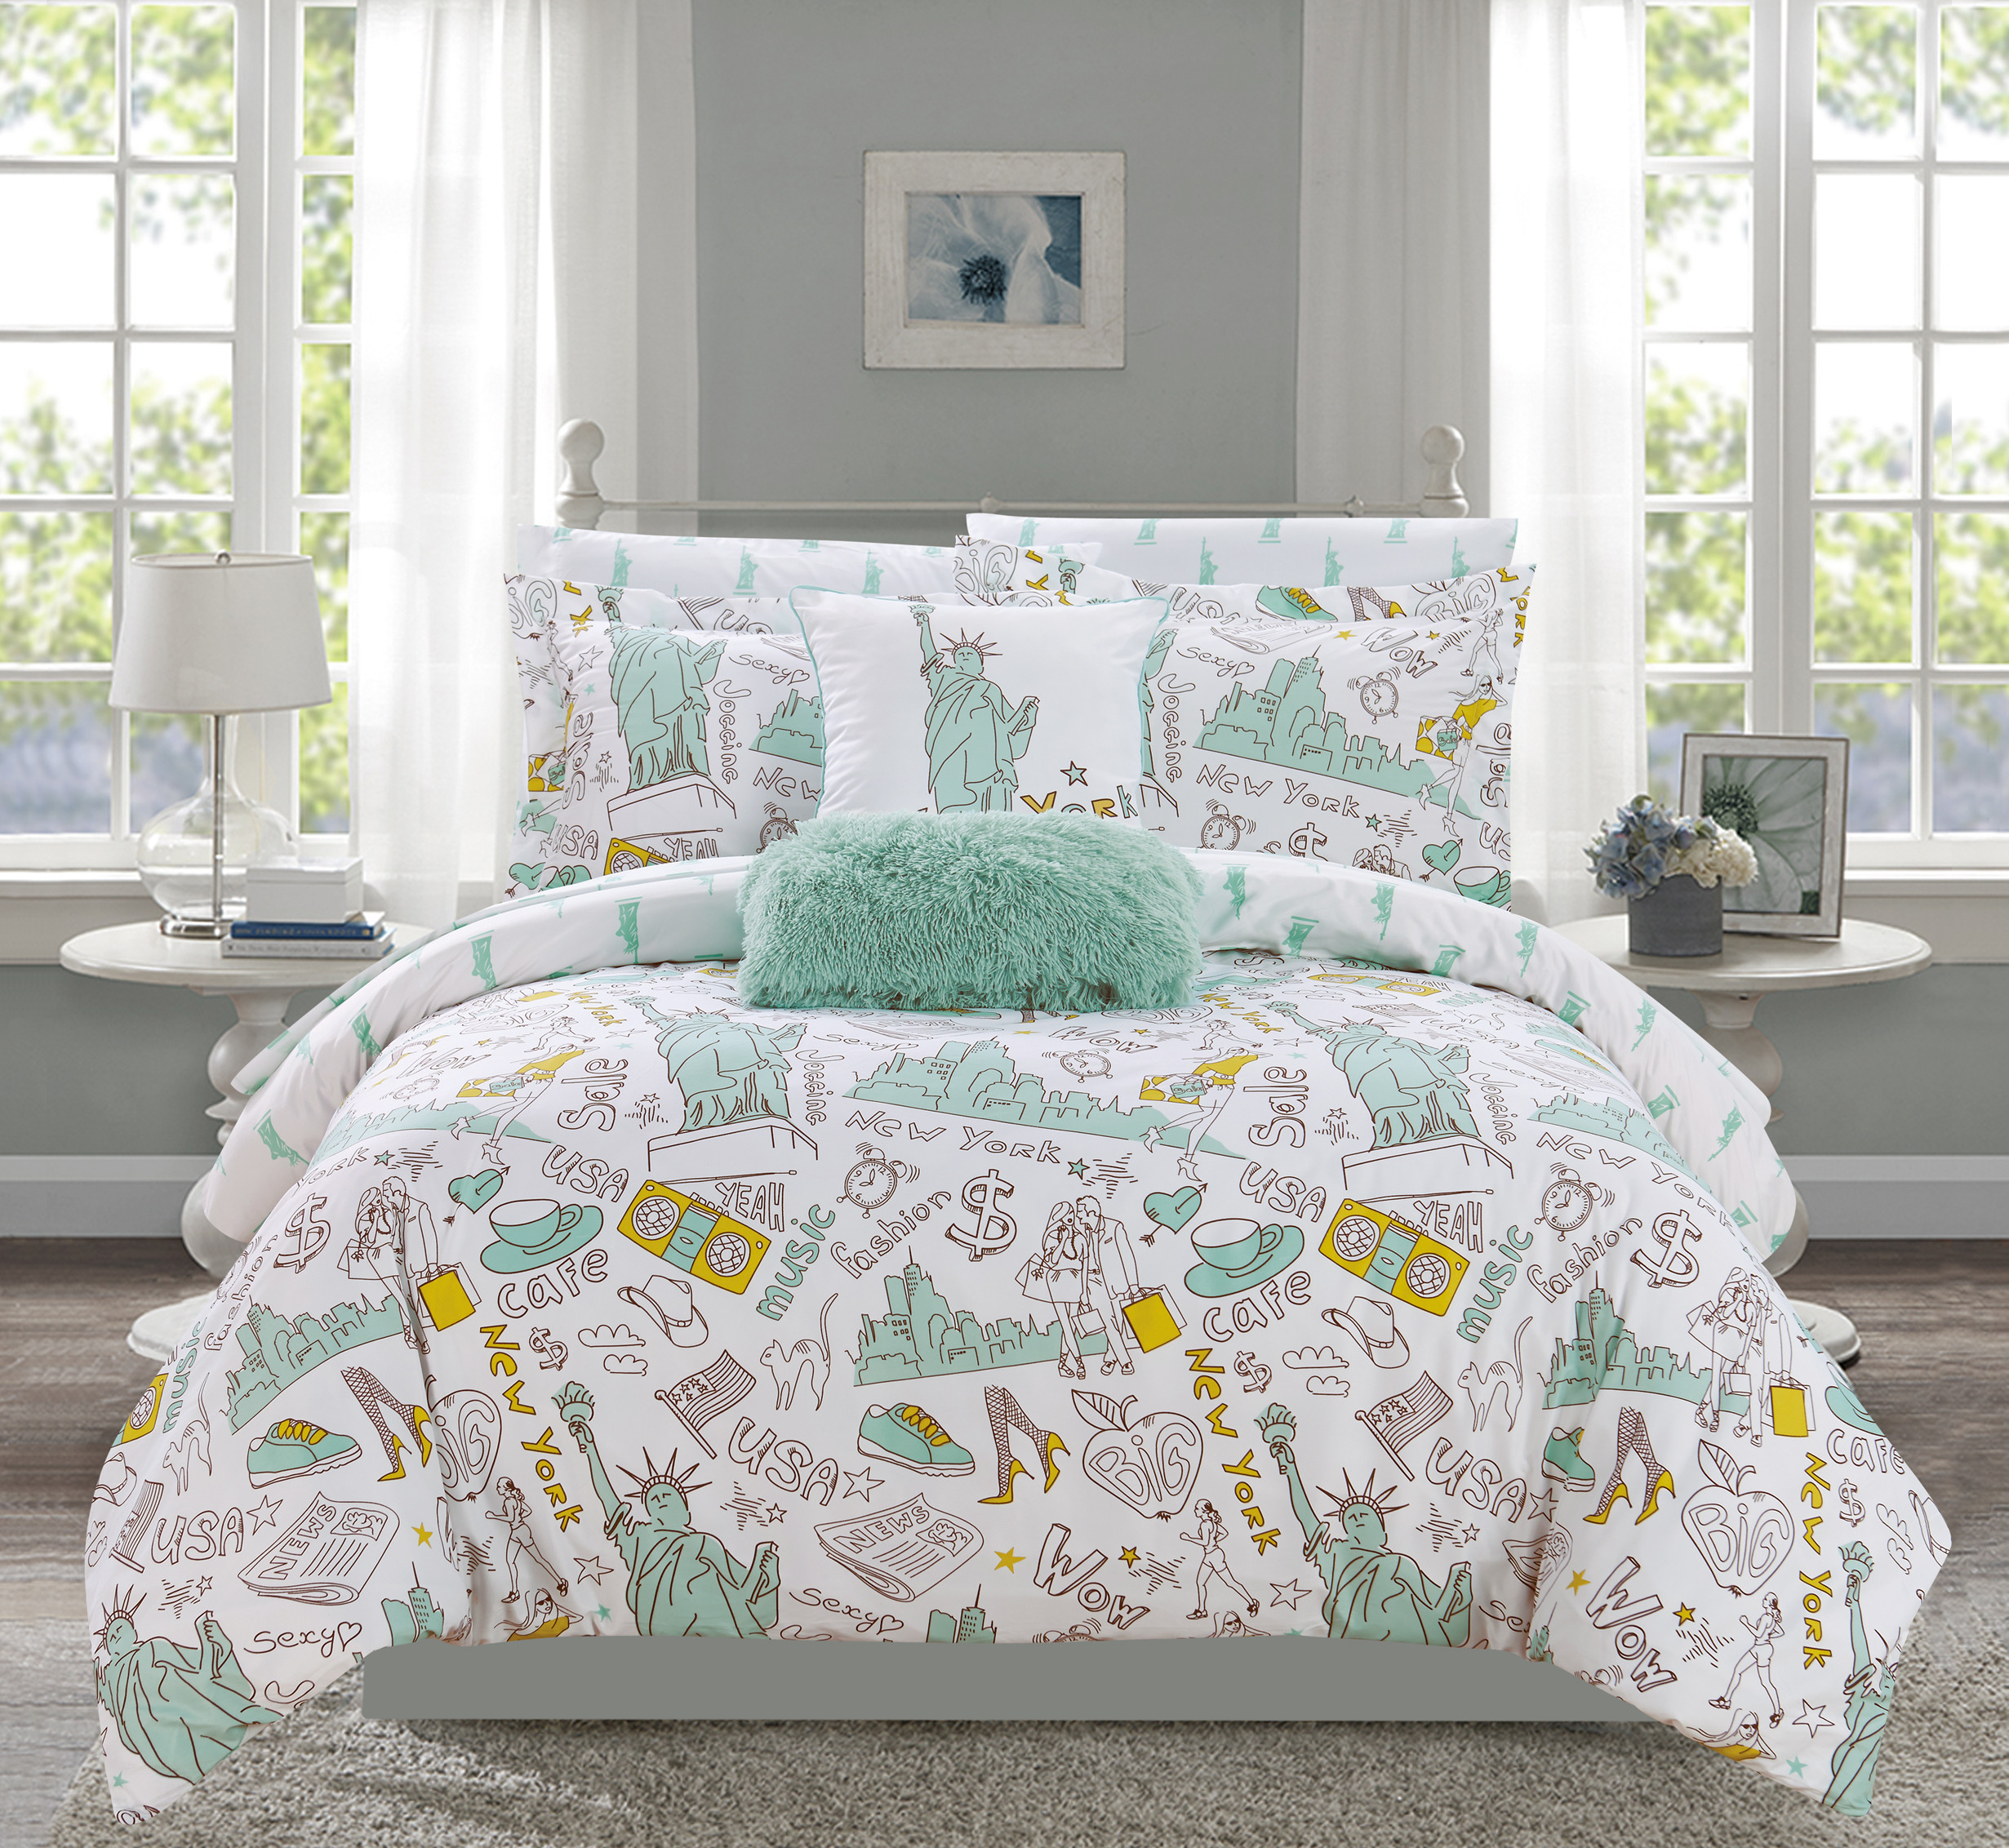 Chic Home Ellis 9 Piece Reversible New York Design Comforter Set